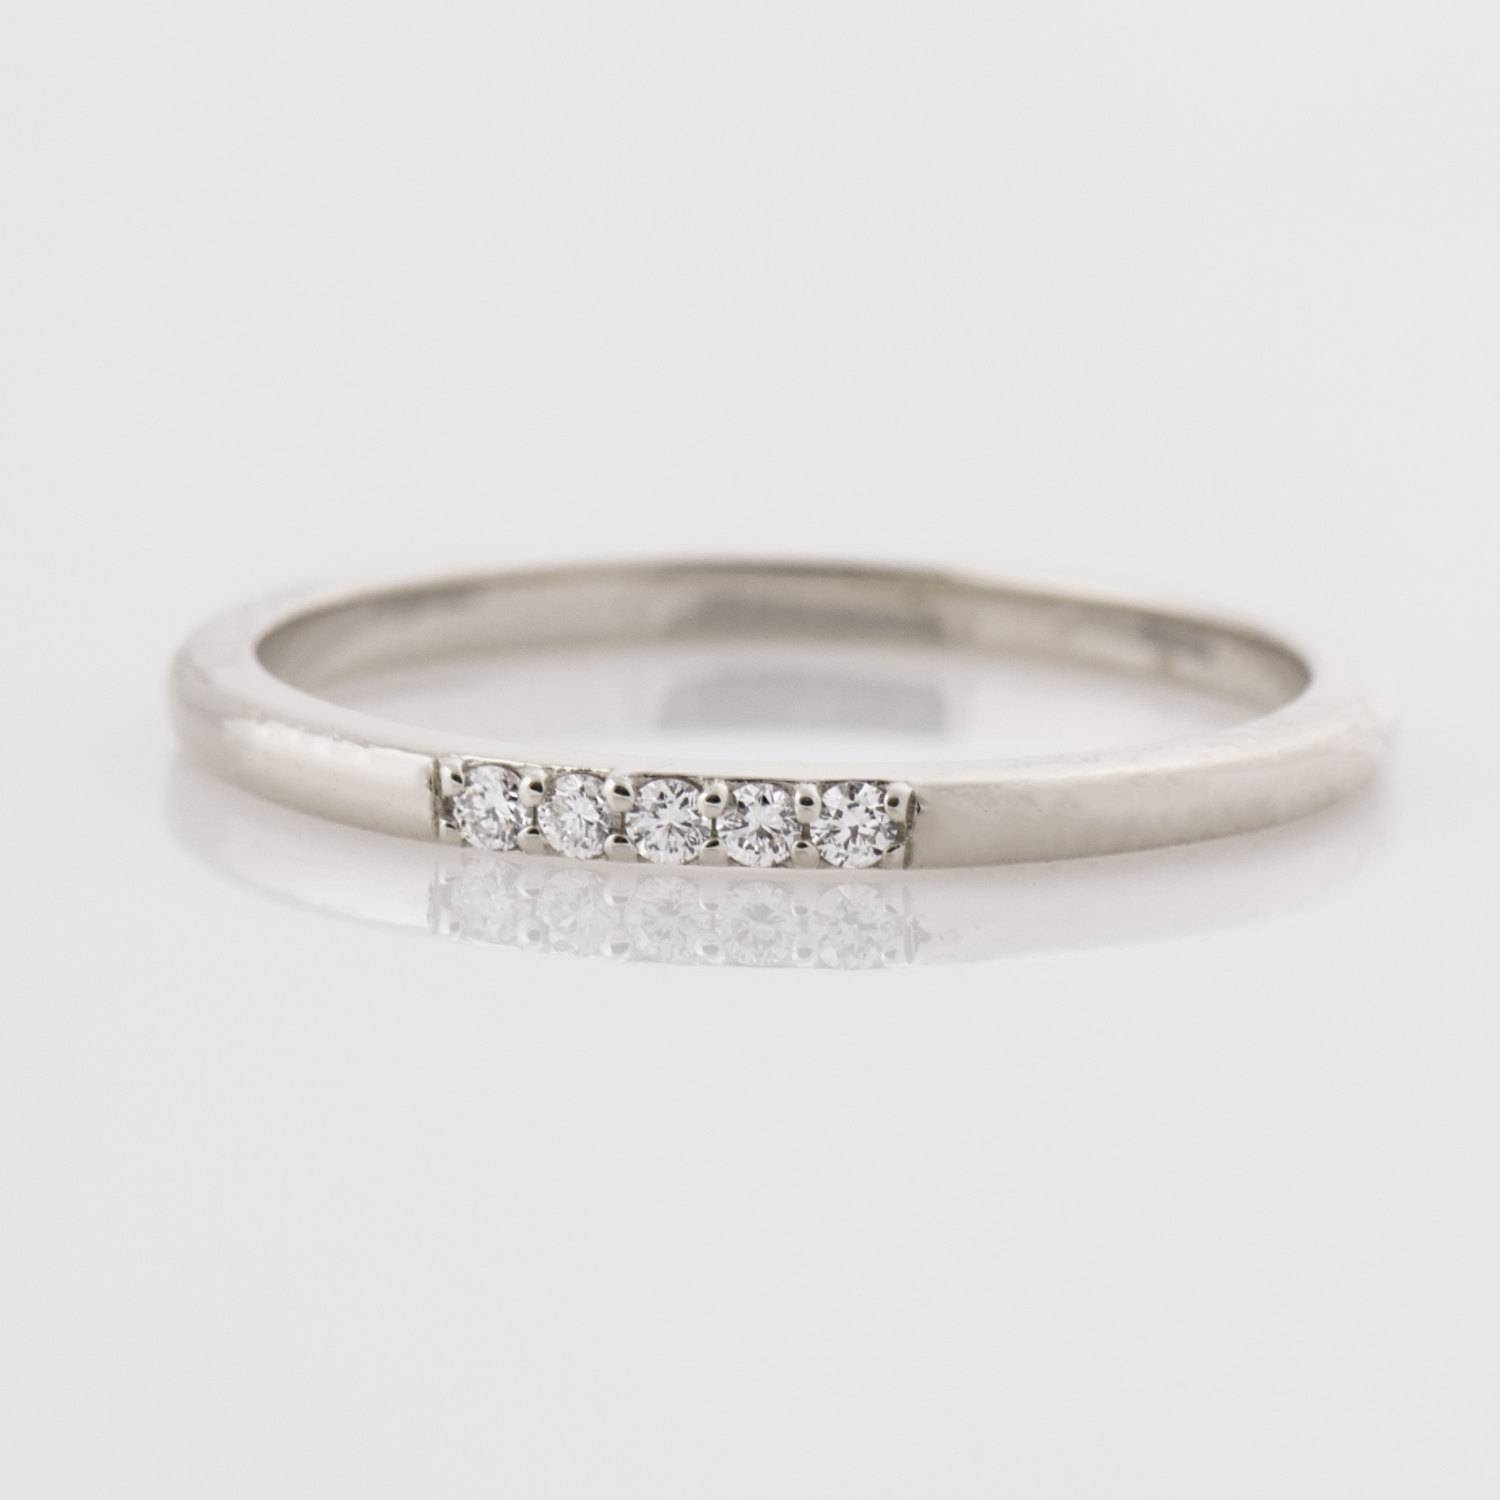 Thin Diamond Ring 14K White Gold Stacking Ring Dainty Pertaining To Dainty Wedding Bands (View 14 of 15)